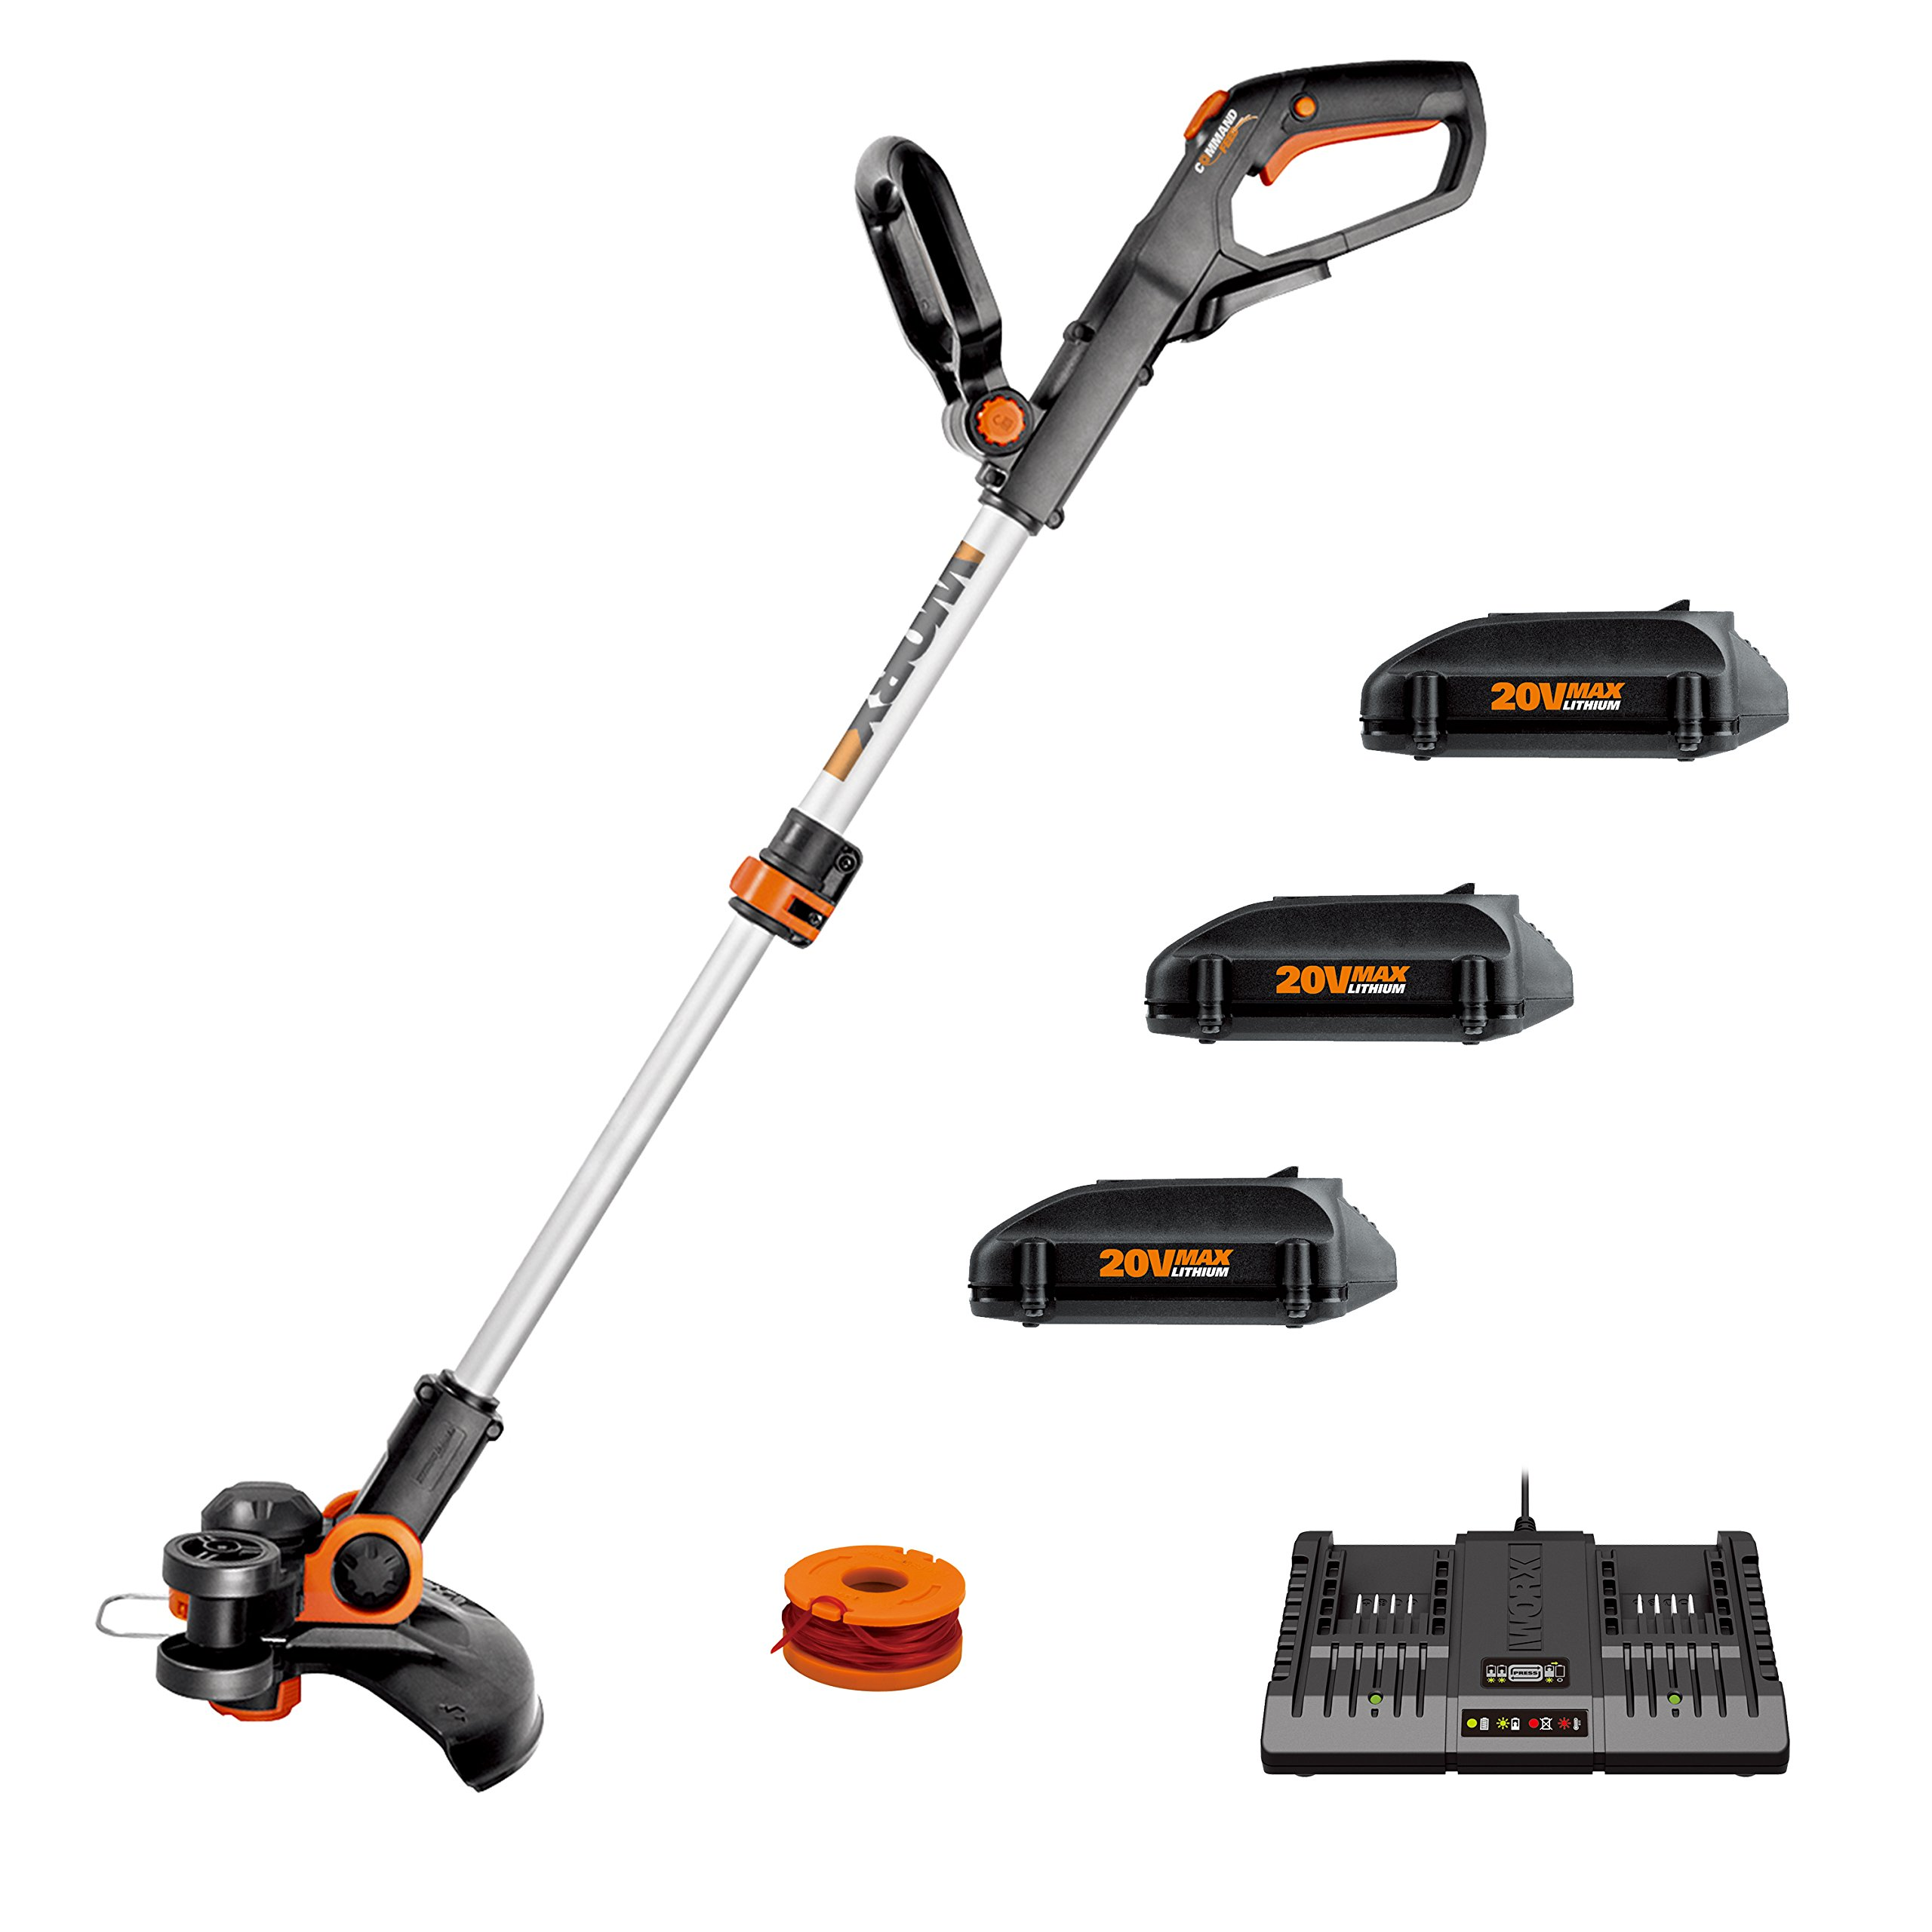 "Worx WG163.4 20V Cordless 12"" Grass Trimmer/Edger with Command Feed; 3 20V Batteries, and 2-hr Dual Charger included"